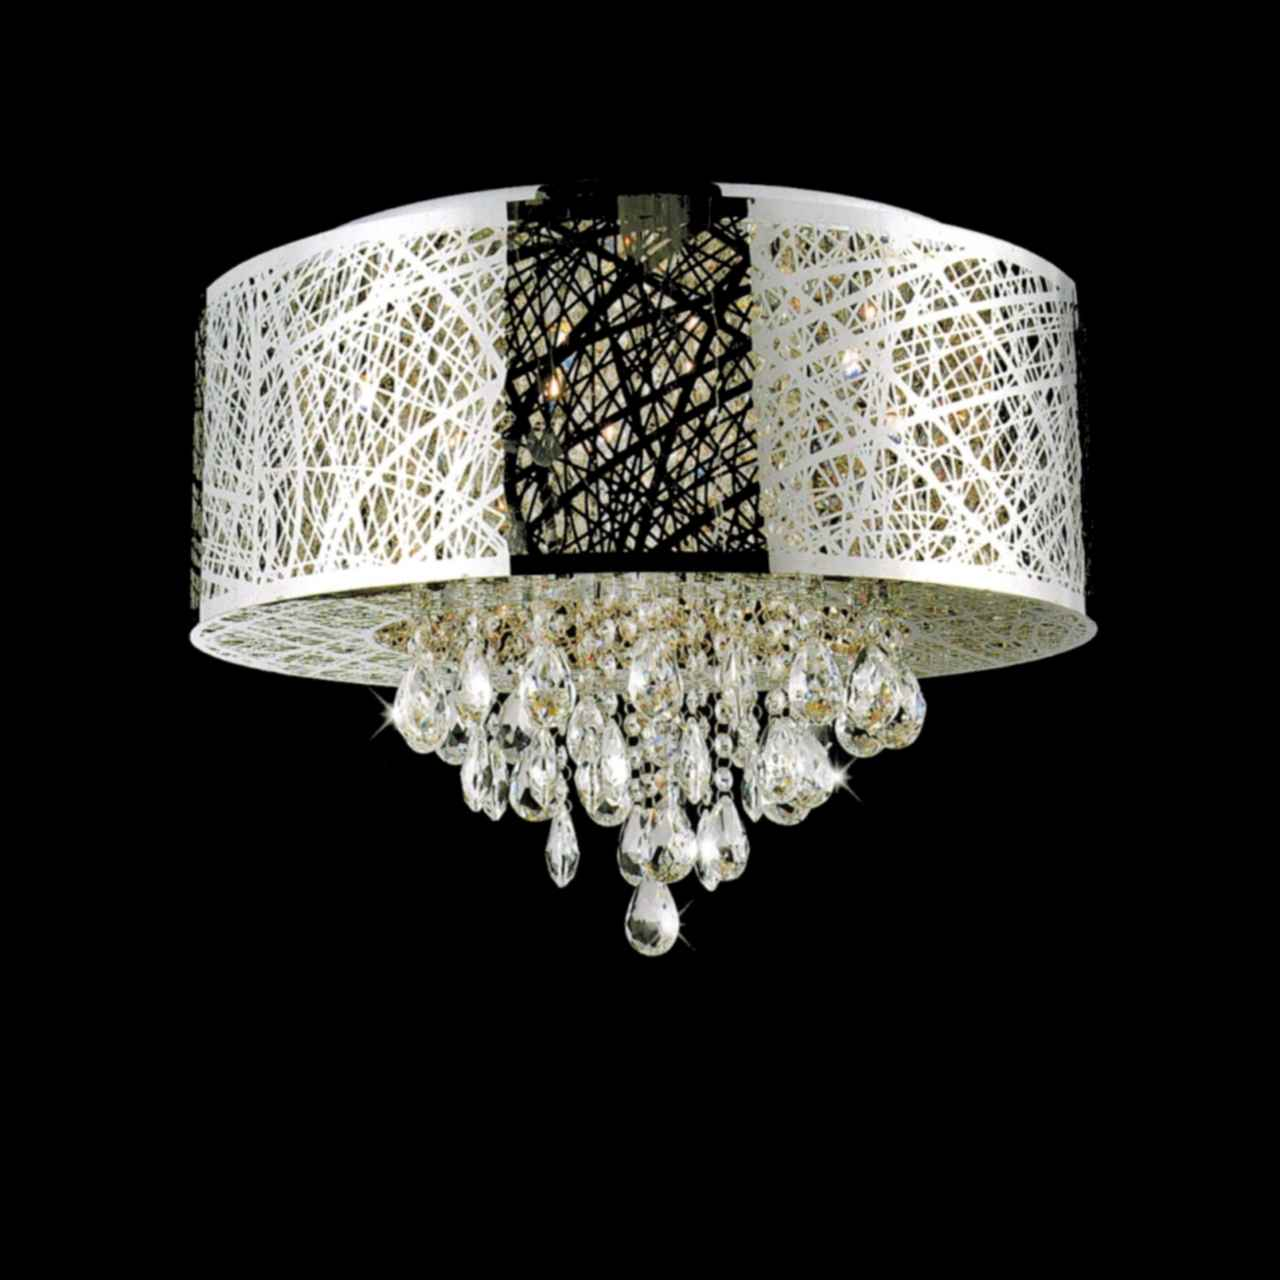 Brizzo Lighting Stores 22 Web Modern Laser Cut Drum Shade Crystal